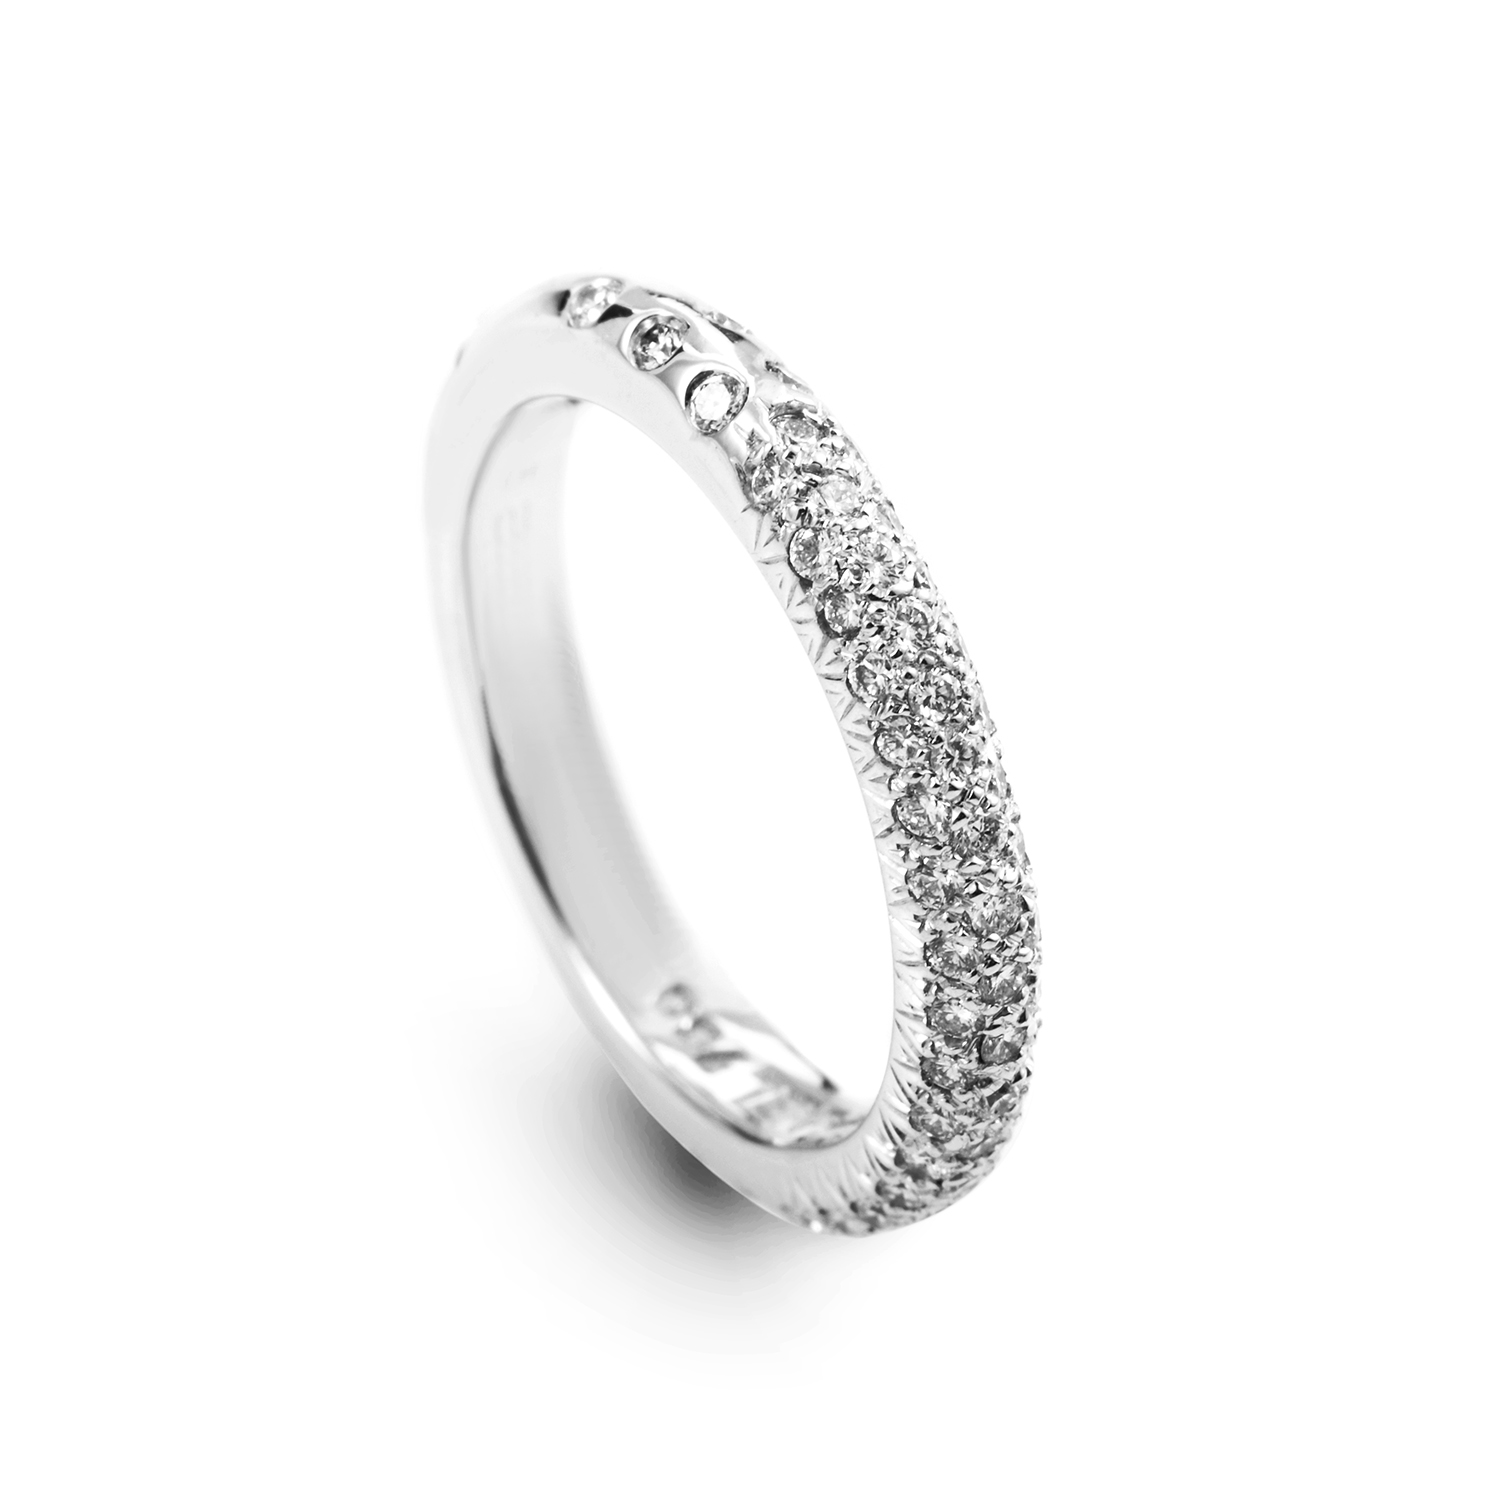 Chanel 18K White Gold Diamond Pave Band